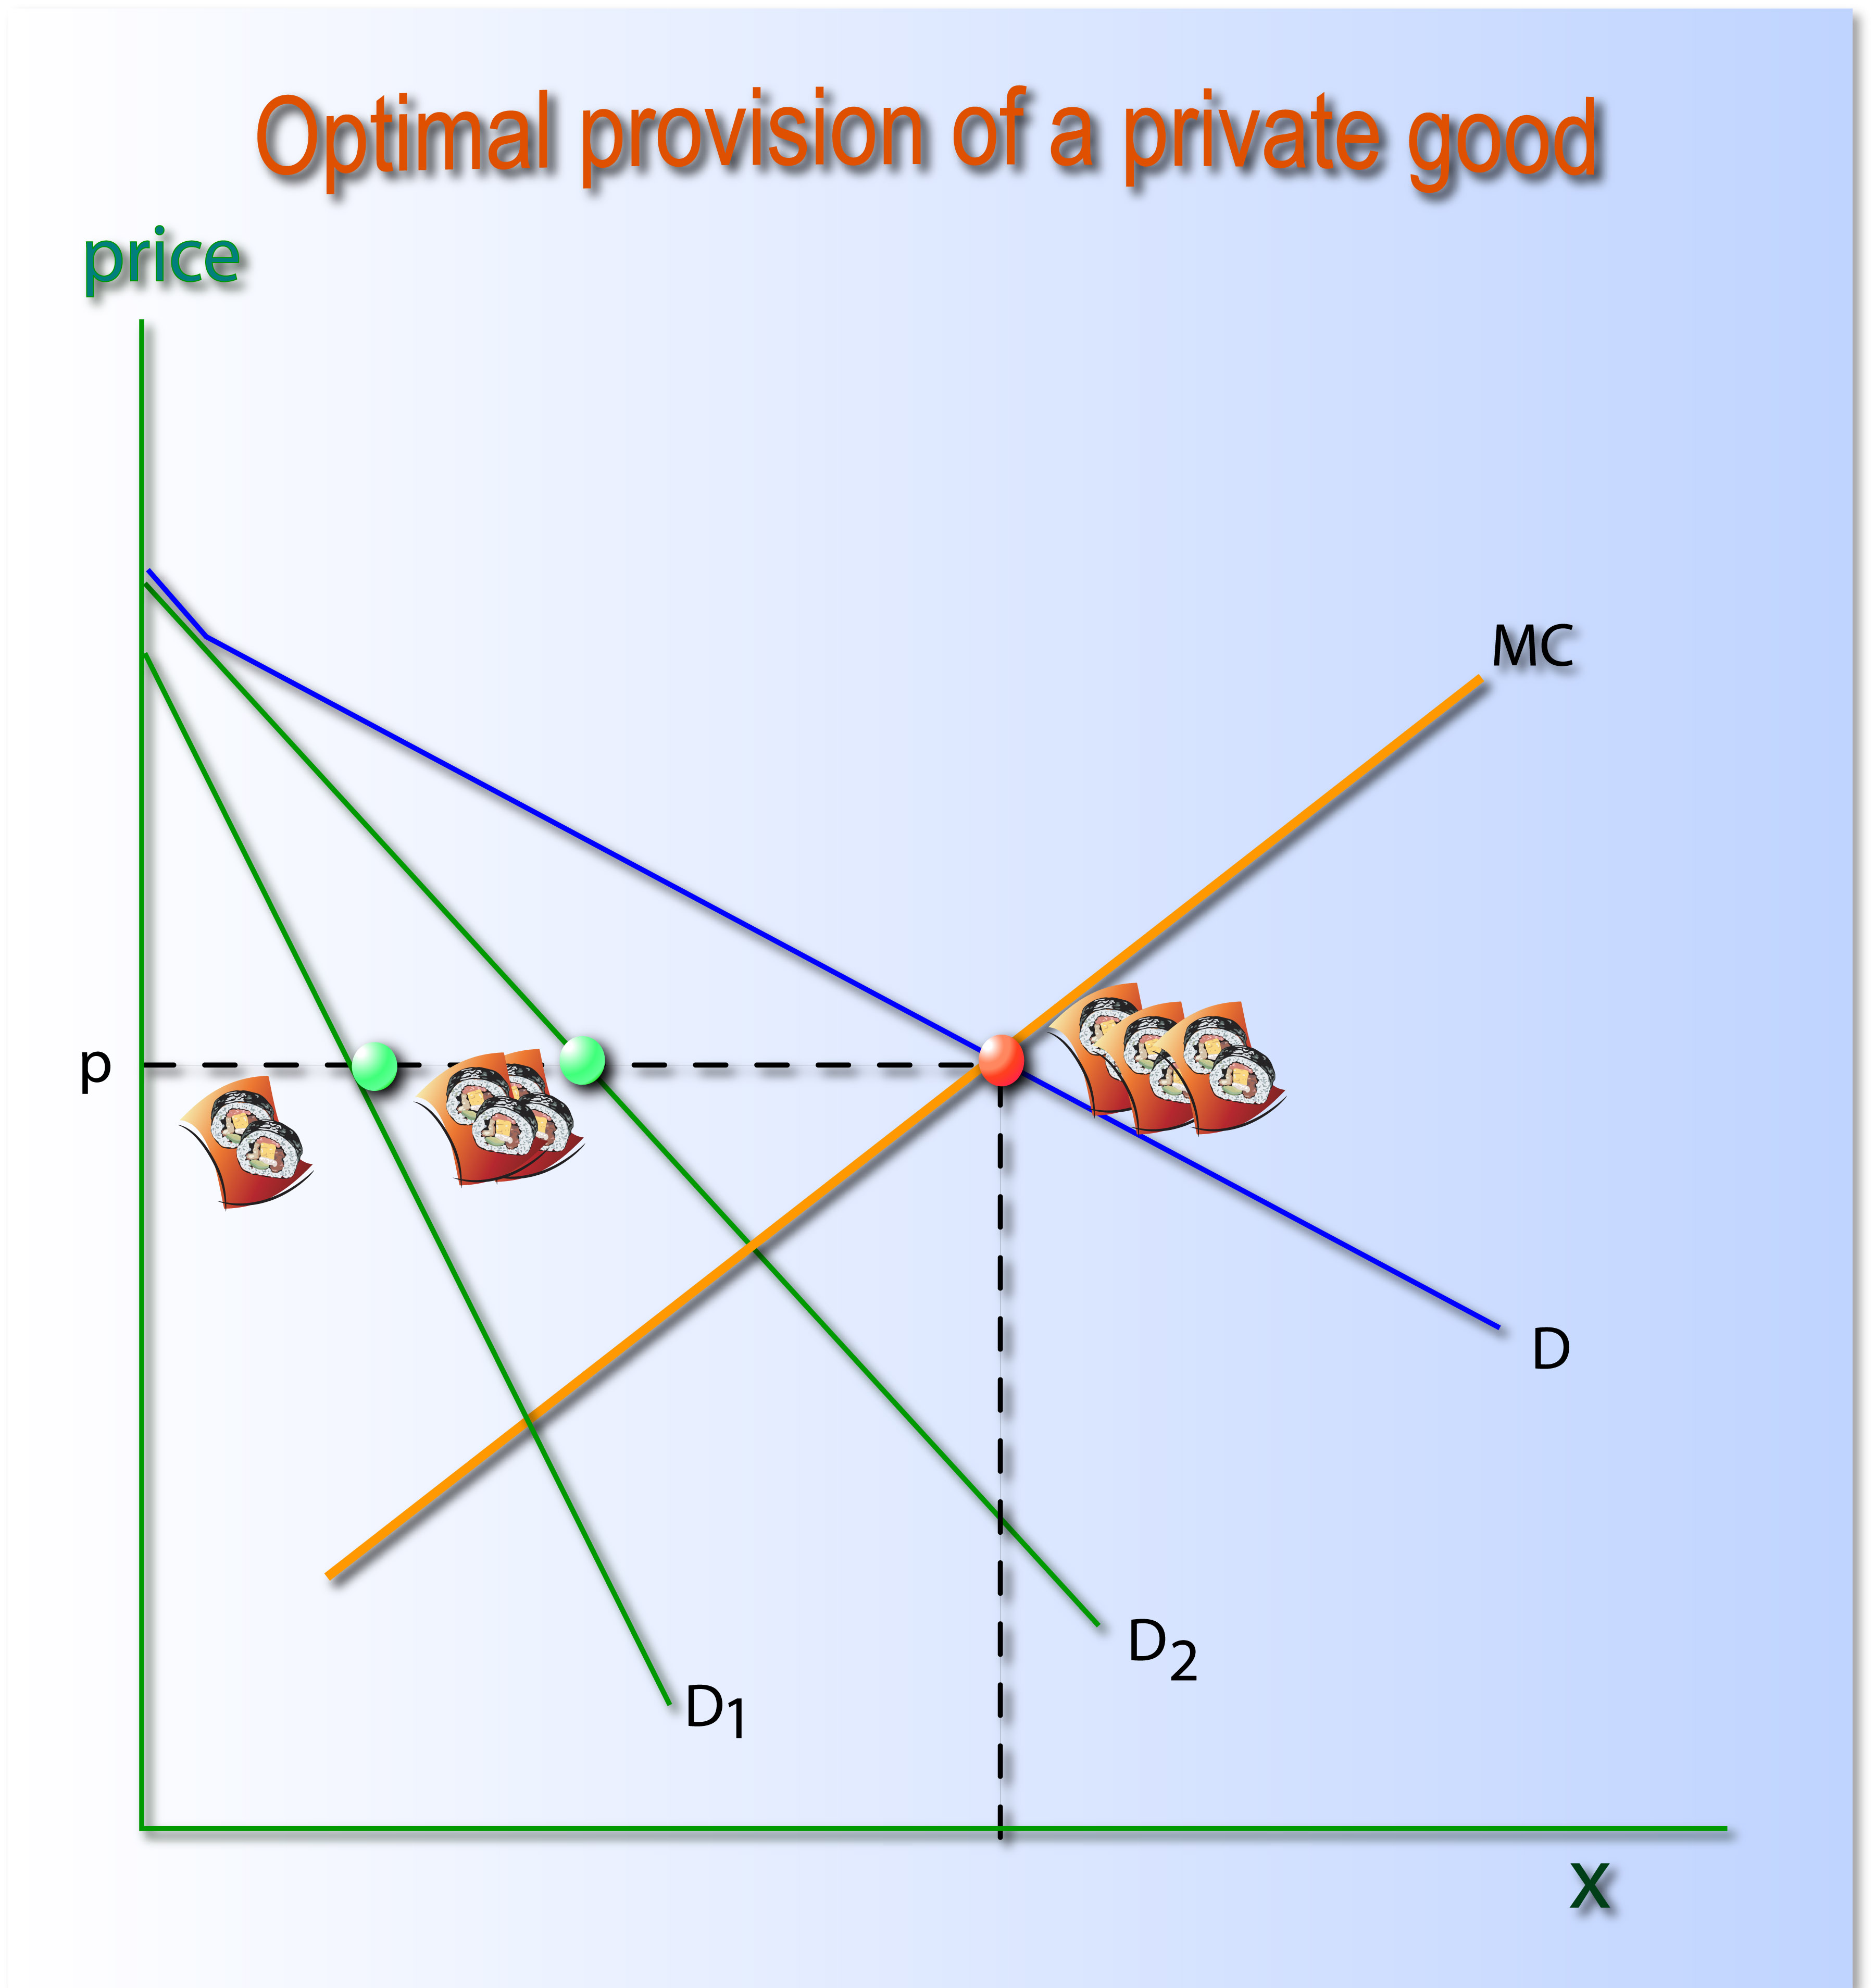 Public Goods 1 Good Government 2 Equitable Tax 3 Public Goods 4 Optimal Provision Of Public Goods 1 Good Government Government S Role 1 Regulates Industries In The Case Of Market Failure 2 Provide Necessary Public Goods And Finance Them